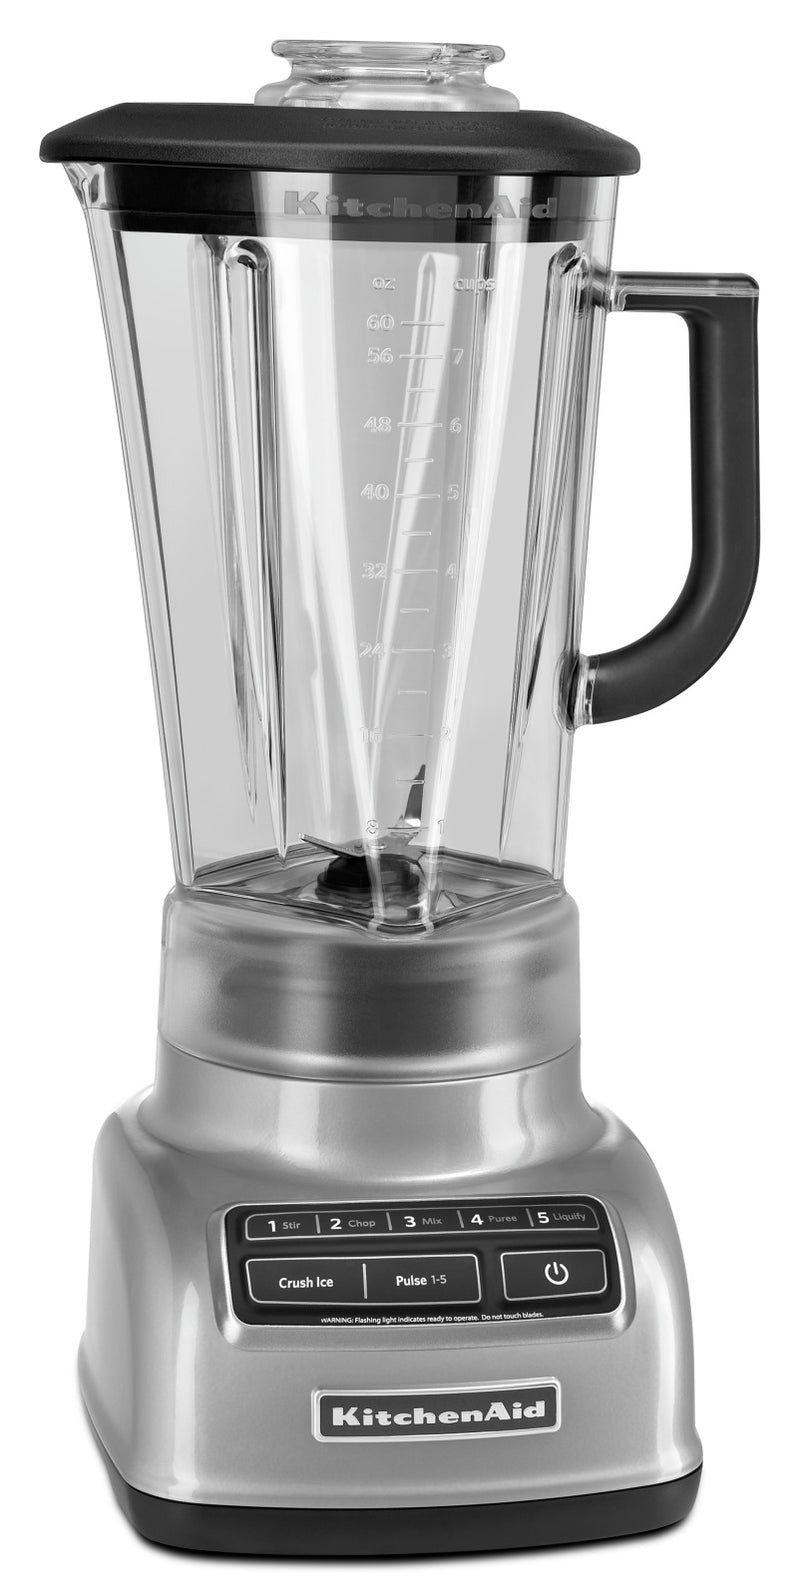 KitchenAid Five-Speed Diamond Blender - KSB1575MC|Mélangeur à base losange à cinq vitesses KitchenAid - KSB1575MC